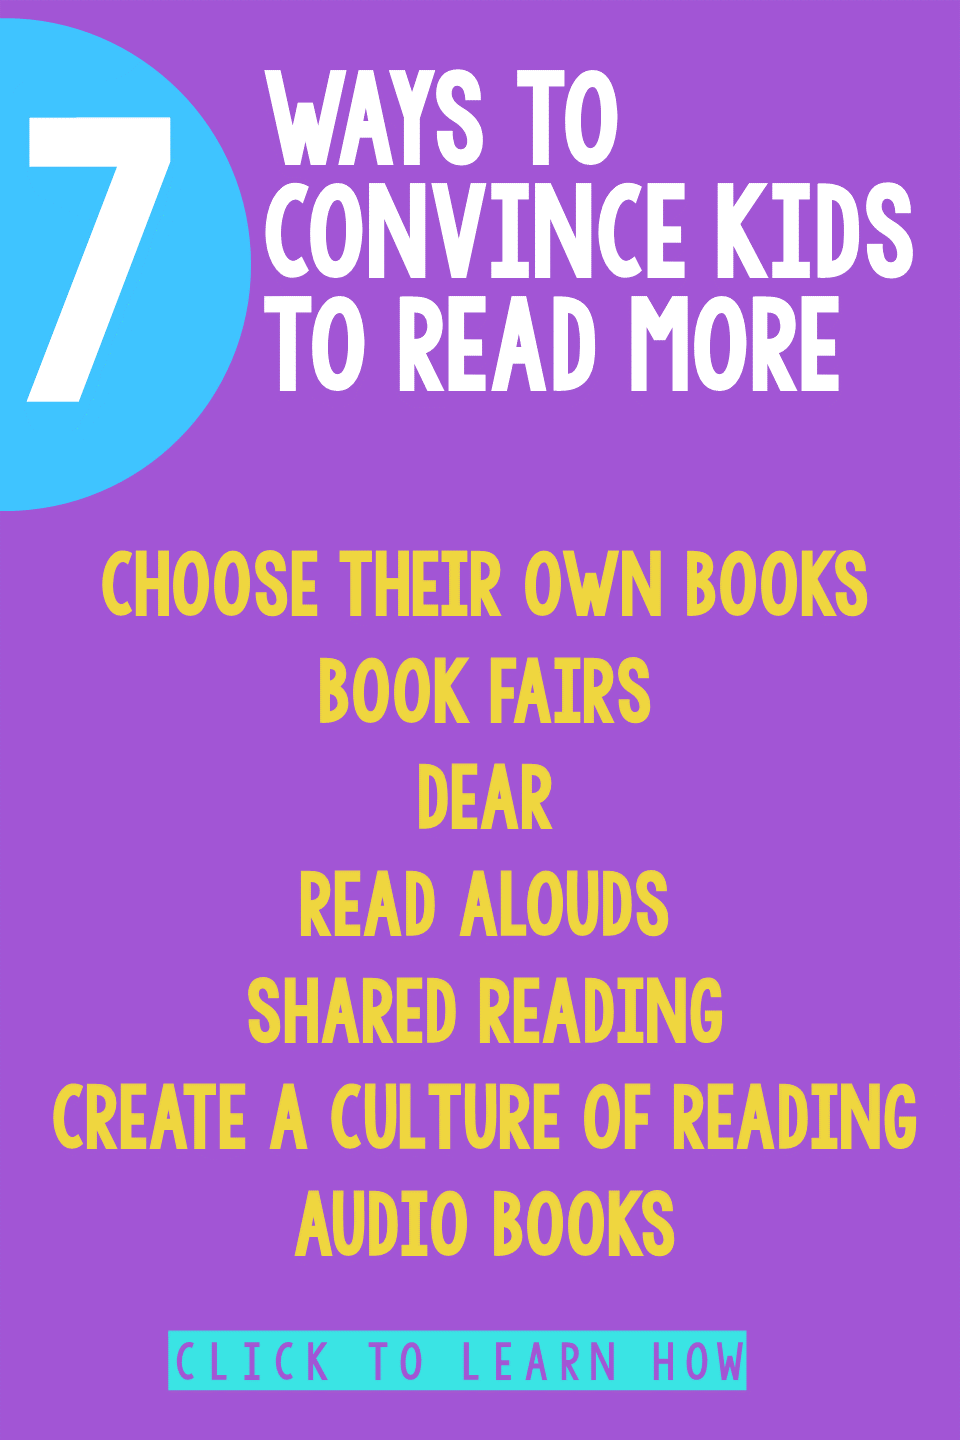 Convincing kids to read more books